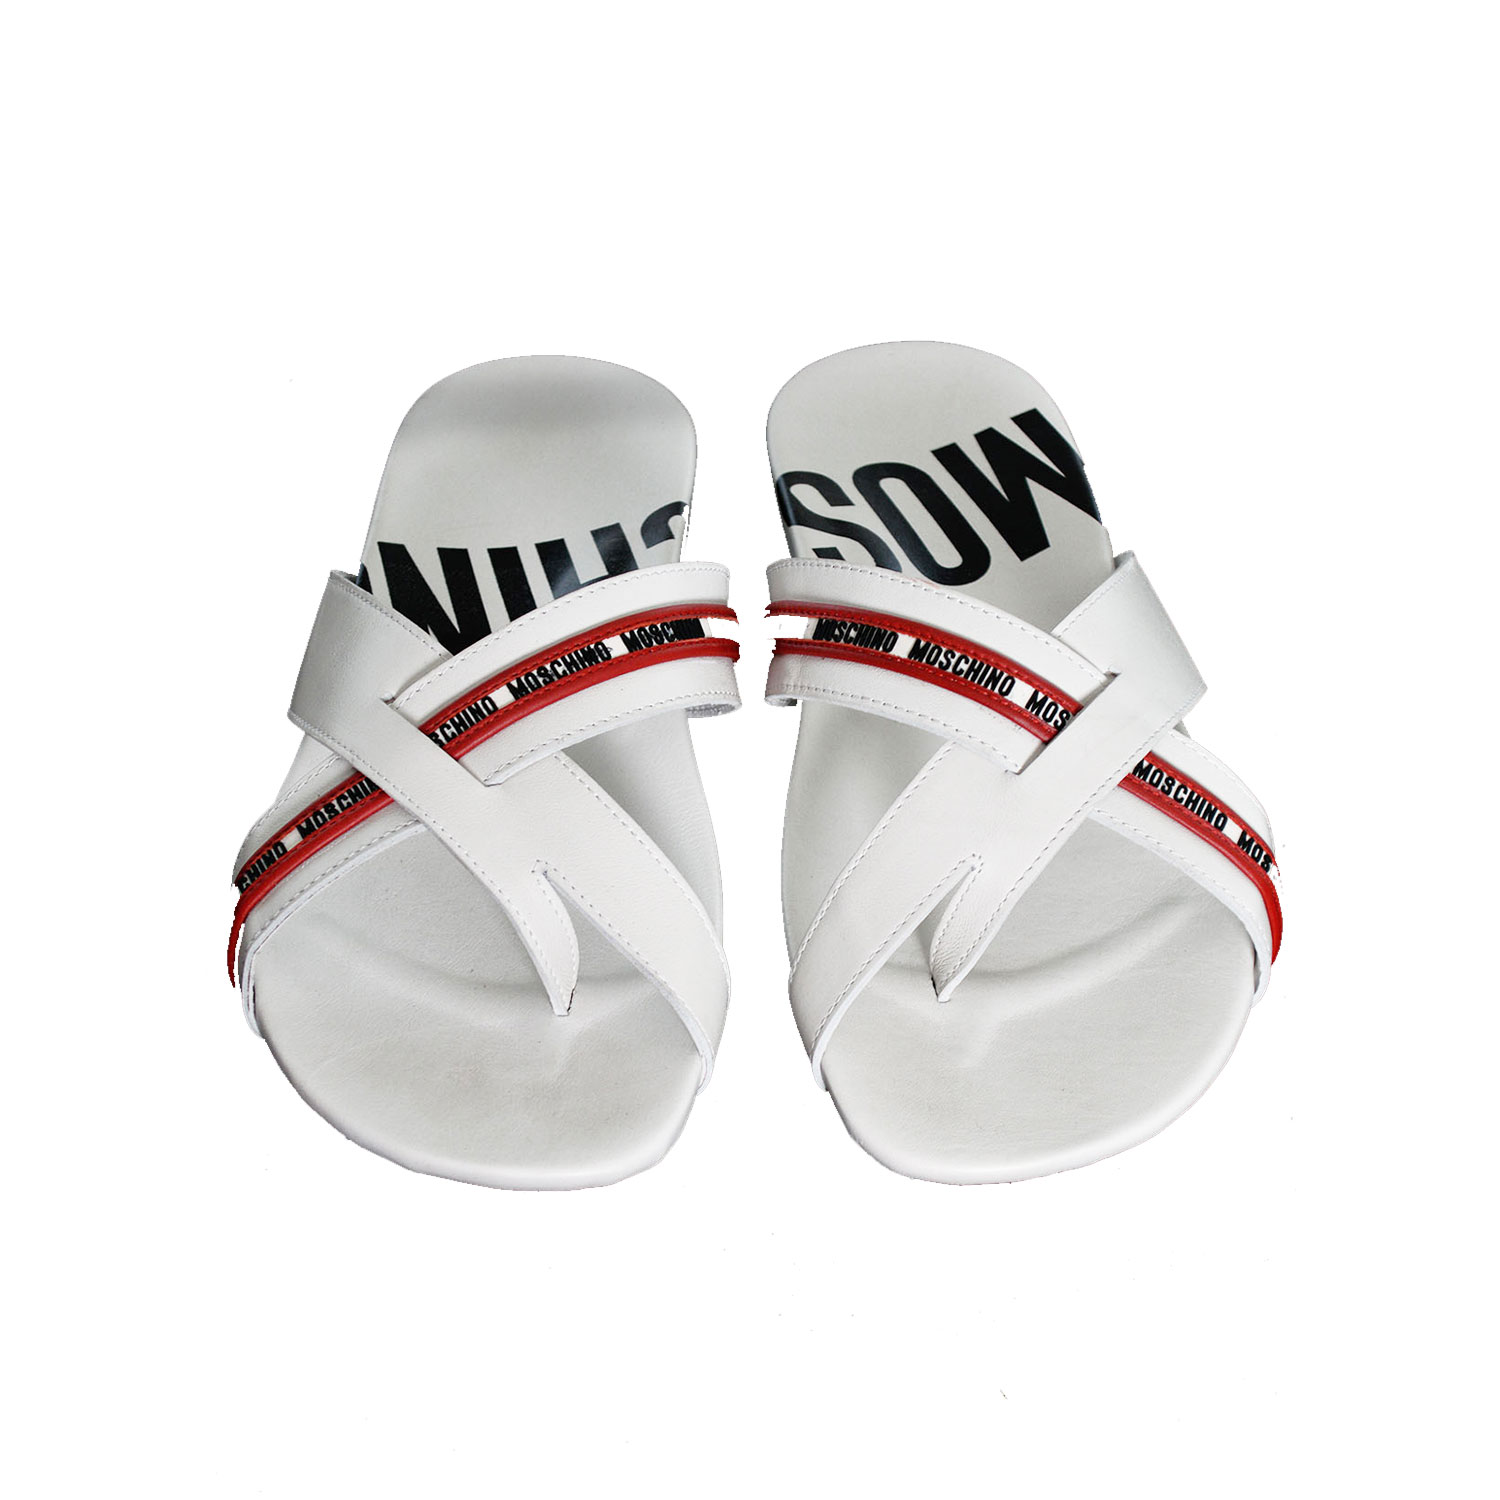 579c6bbc6860 ... Moschino-Slippers--Right-View-(Red-and-Black) ...